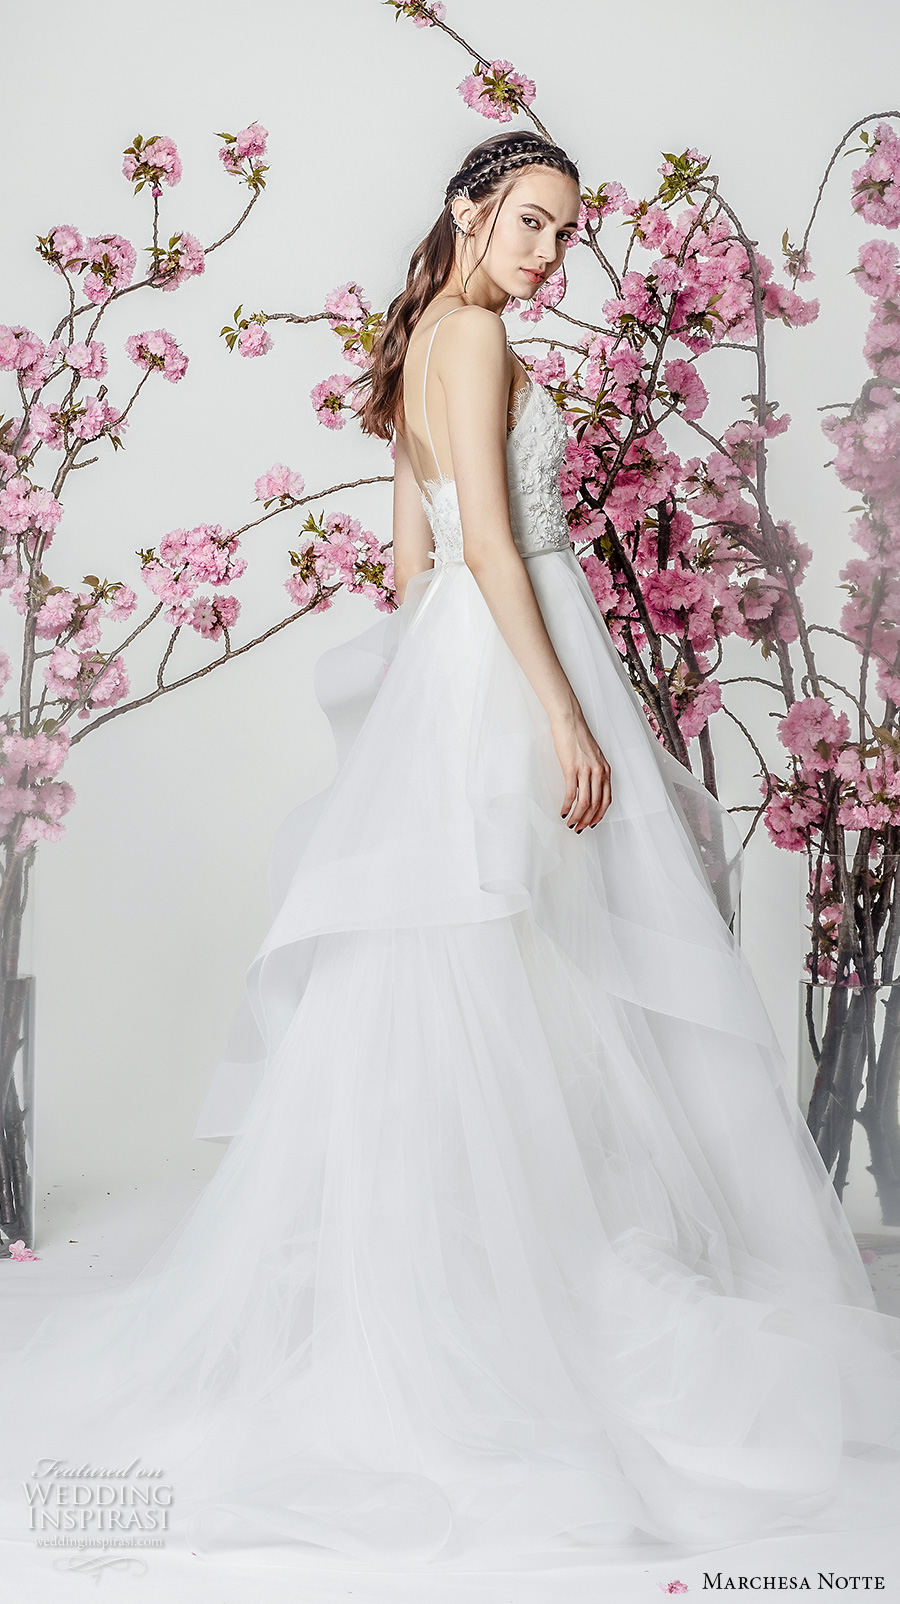 marchesa notte spring 2018 bridal sleeveless spaghetti strap sweetheart neckline heavily embellished bodice layered skirt a line wedding dresschapel train (13) sdv